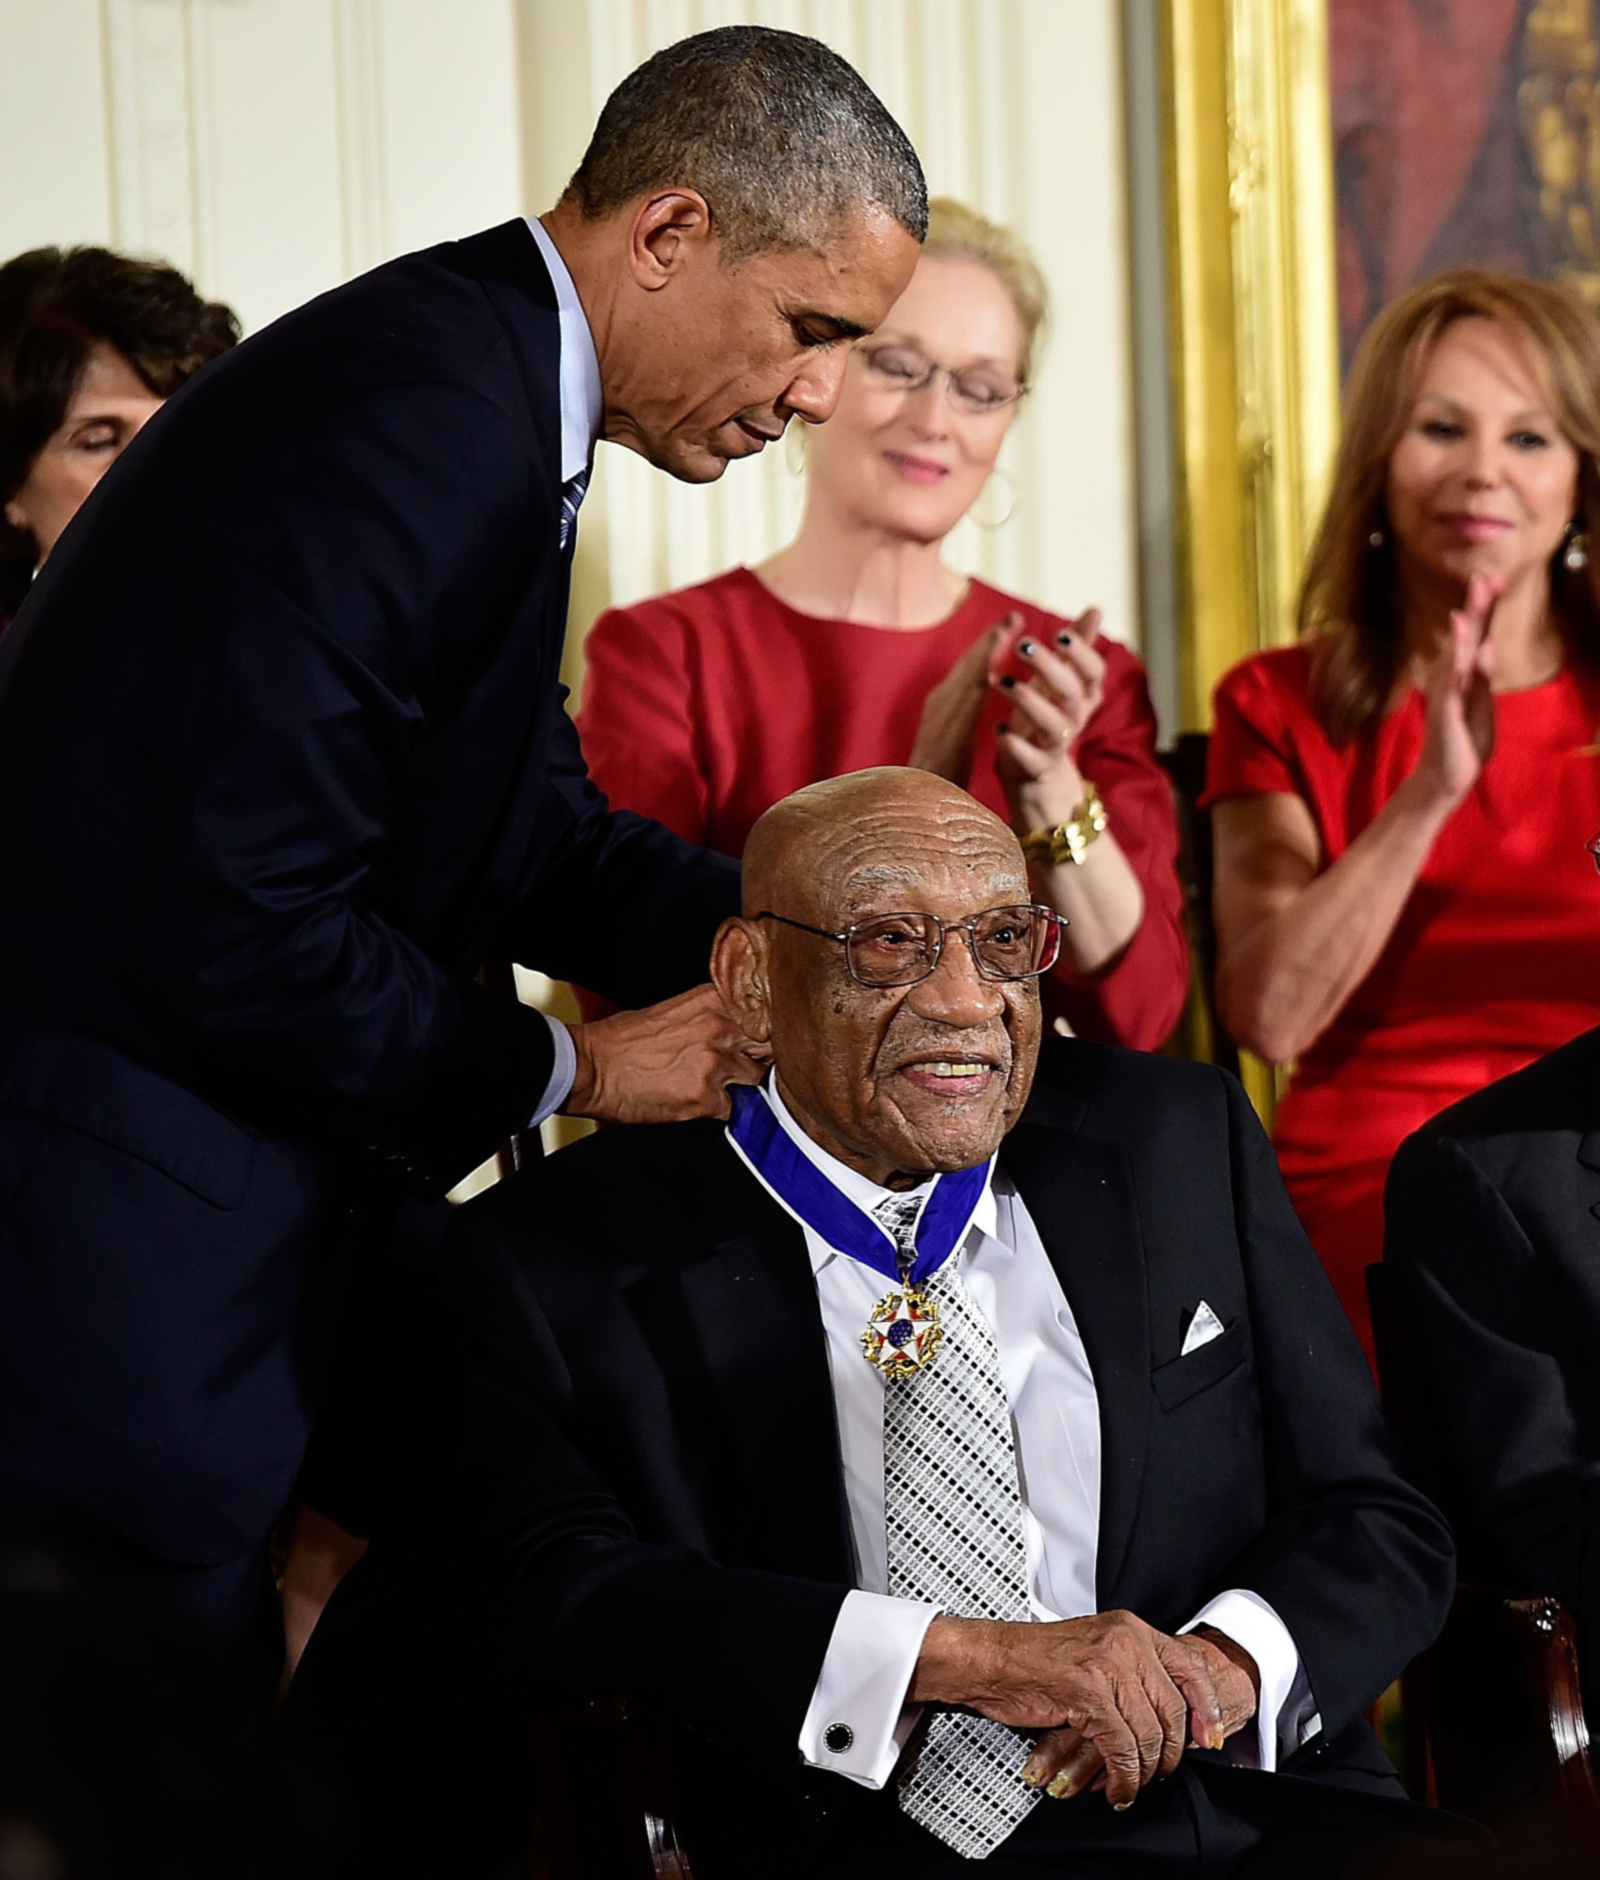 Sifford receives The Medal of Freedom from President Obama